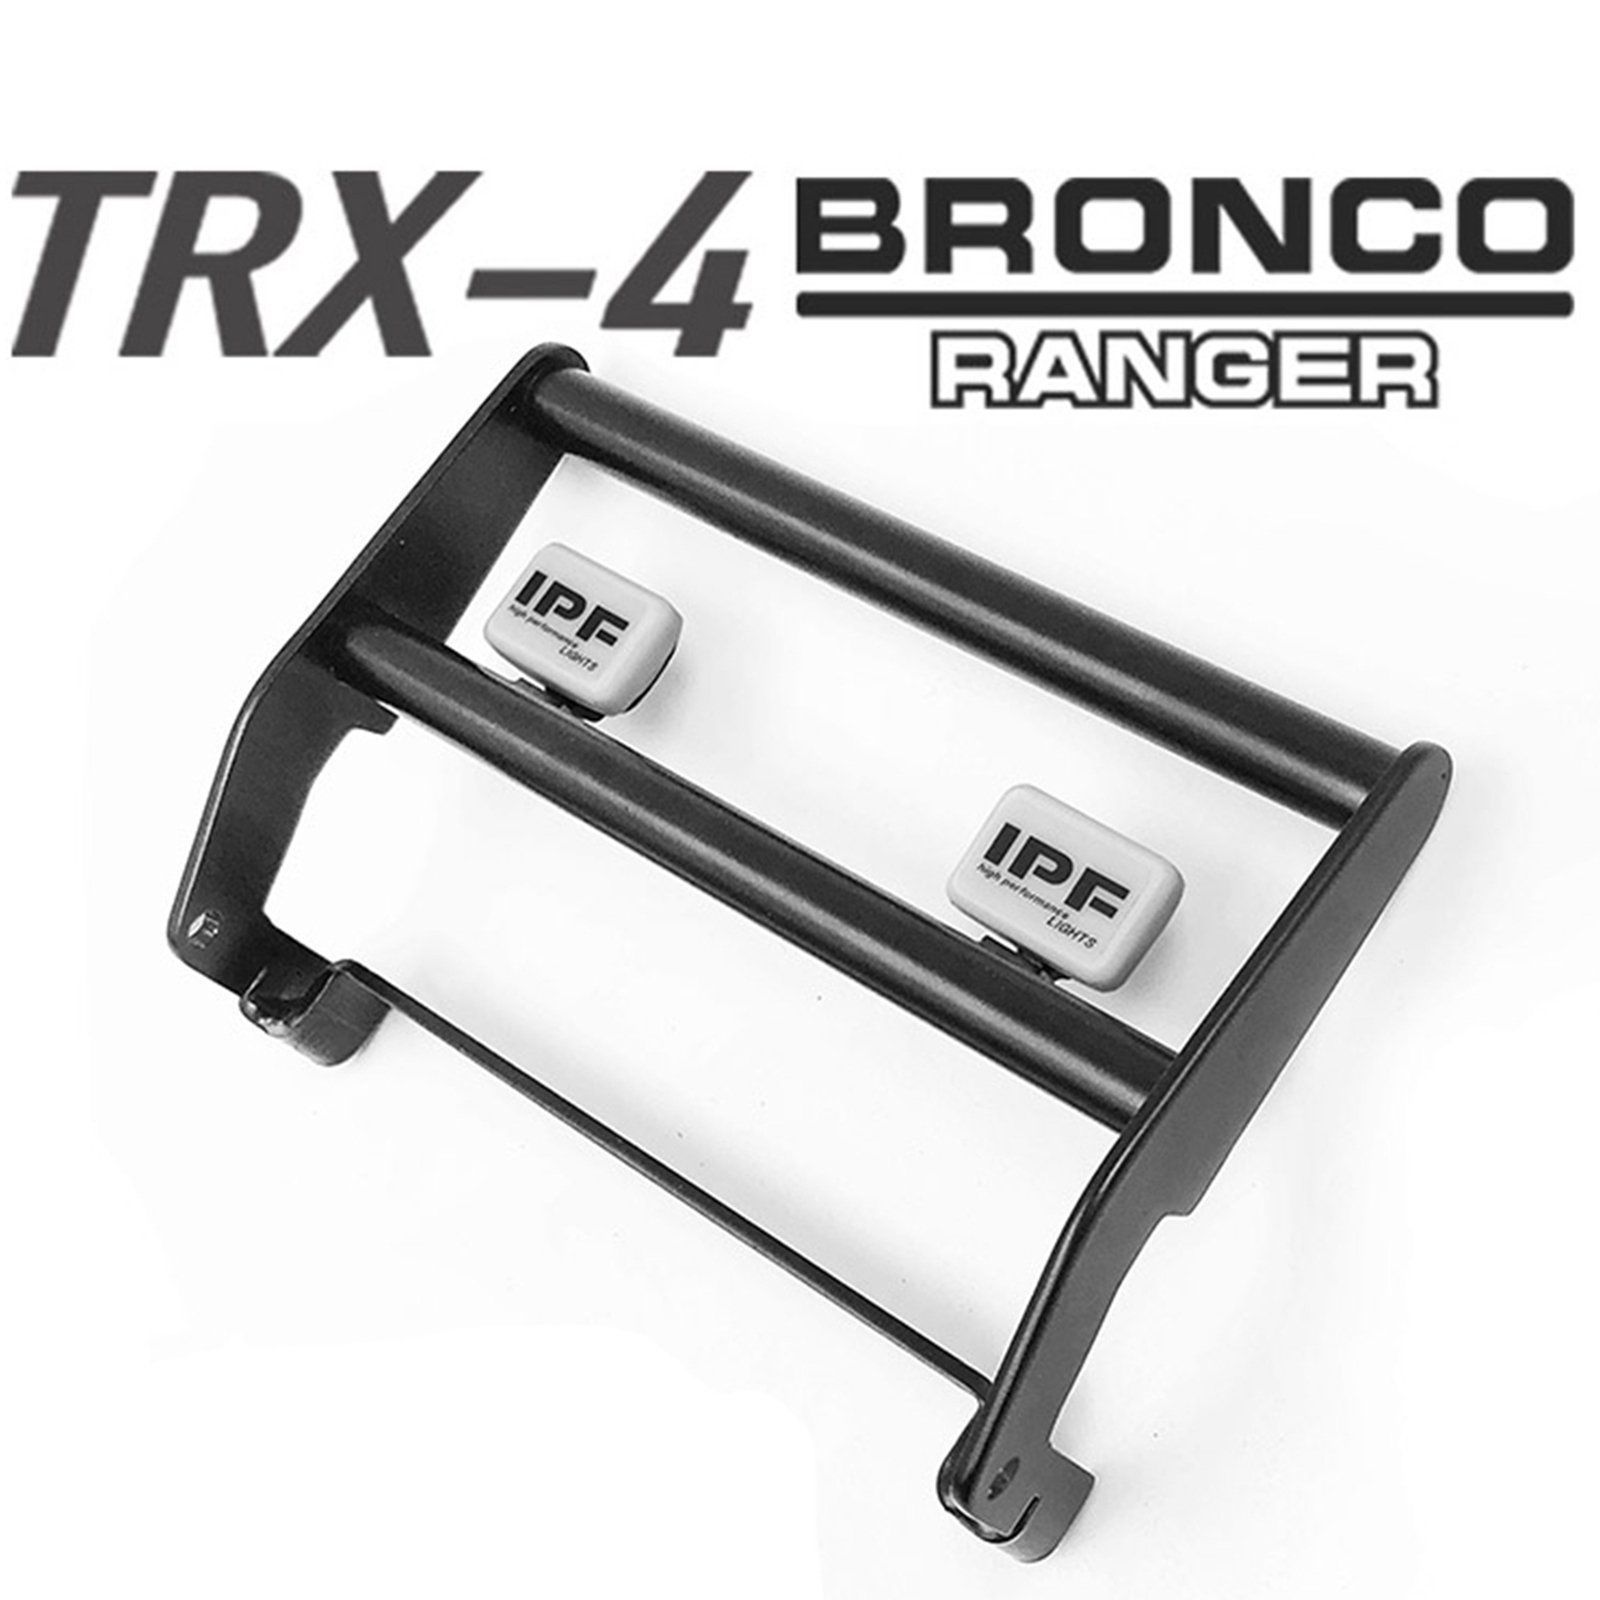 RC Car Accessories Metal Front Bumper W/ LED Light for TRAXXAS TRX-4